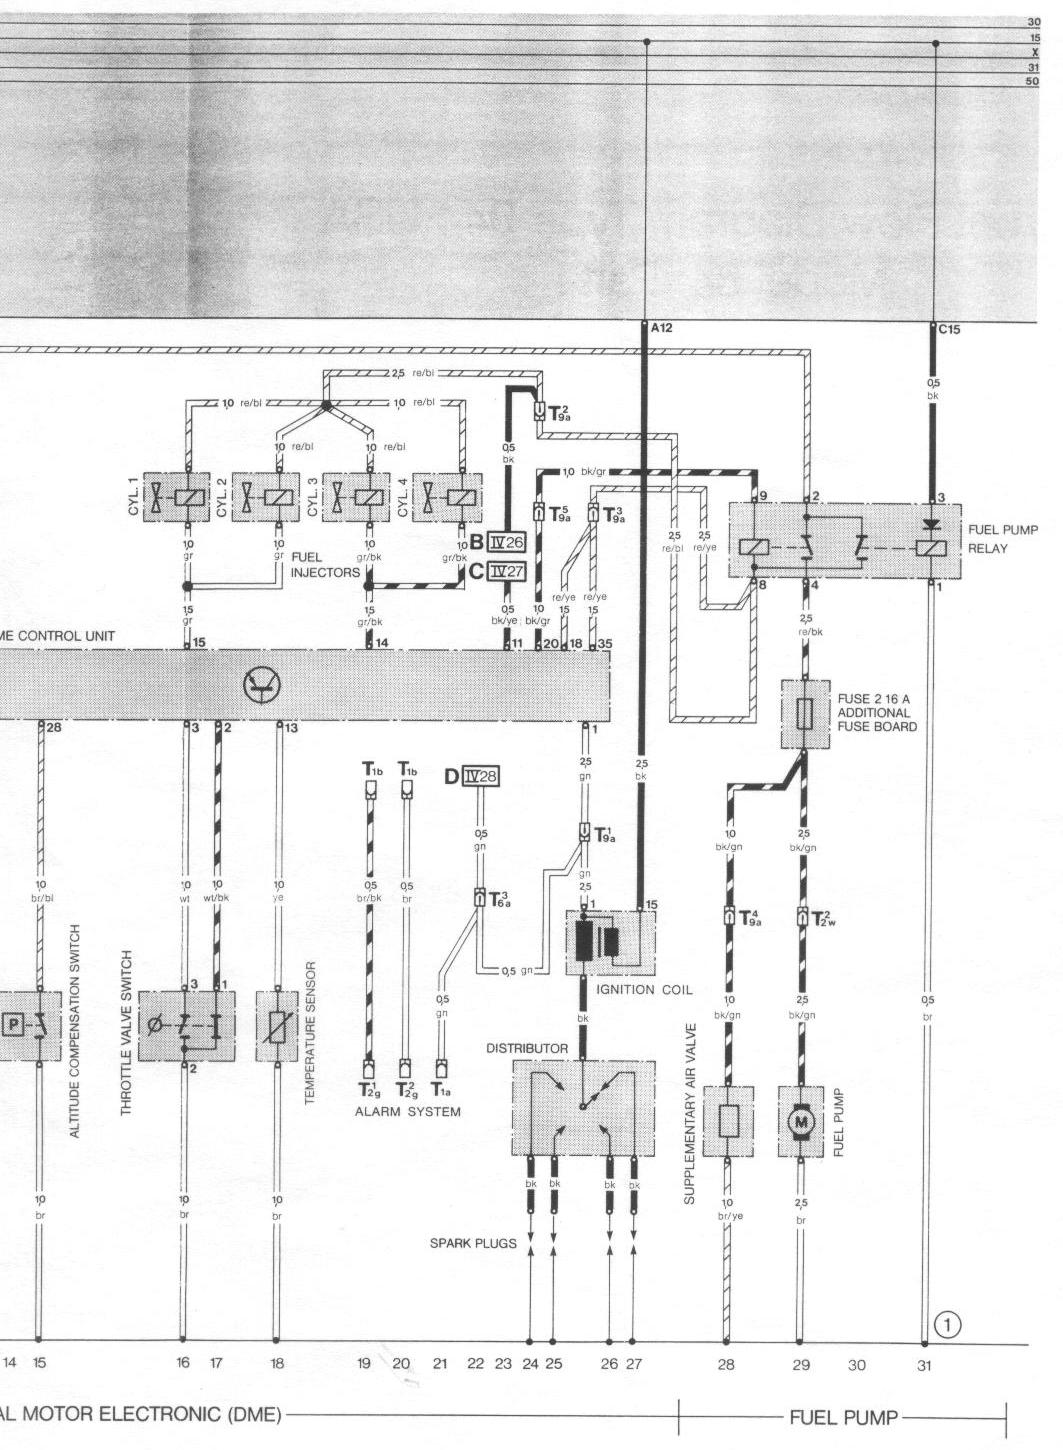 944_84_1_2 pelican parts porsche 924 944 electrical diagrams 1984 porsche 944 fuse box diagram at readyjetset.co